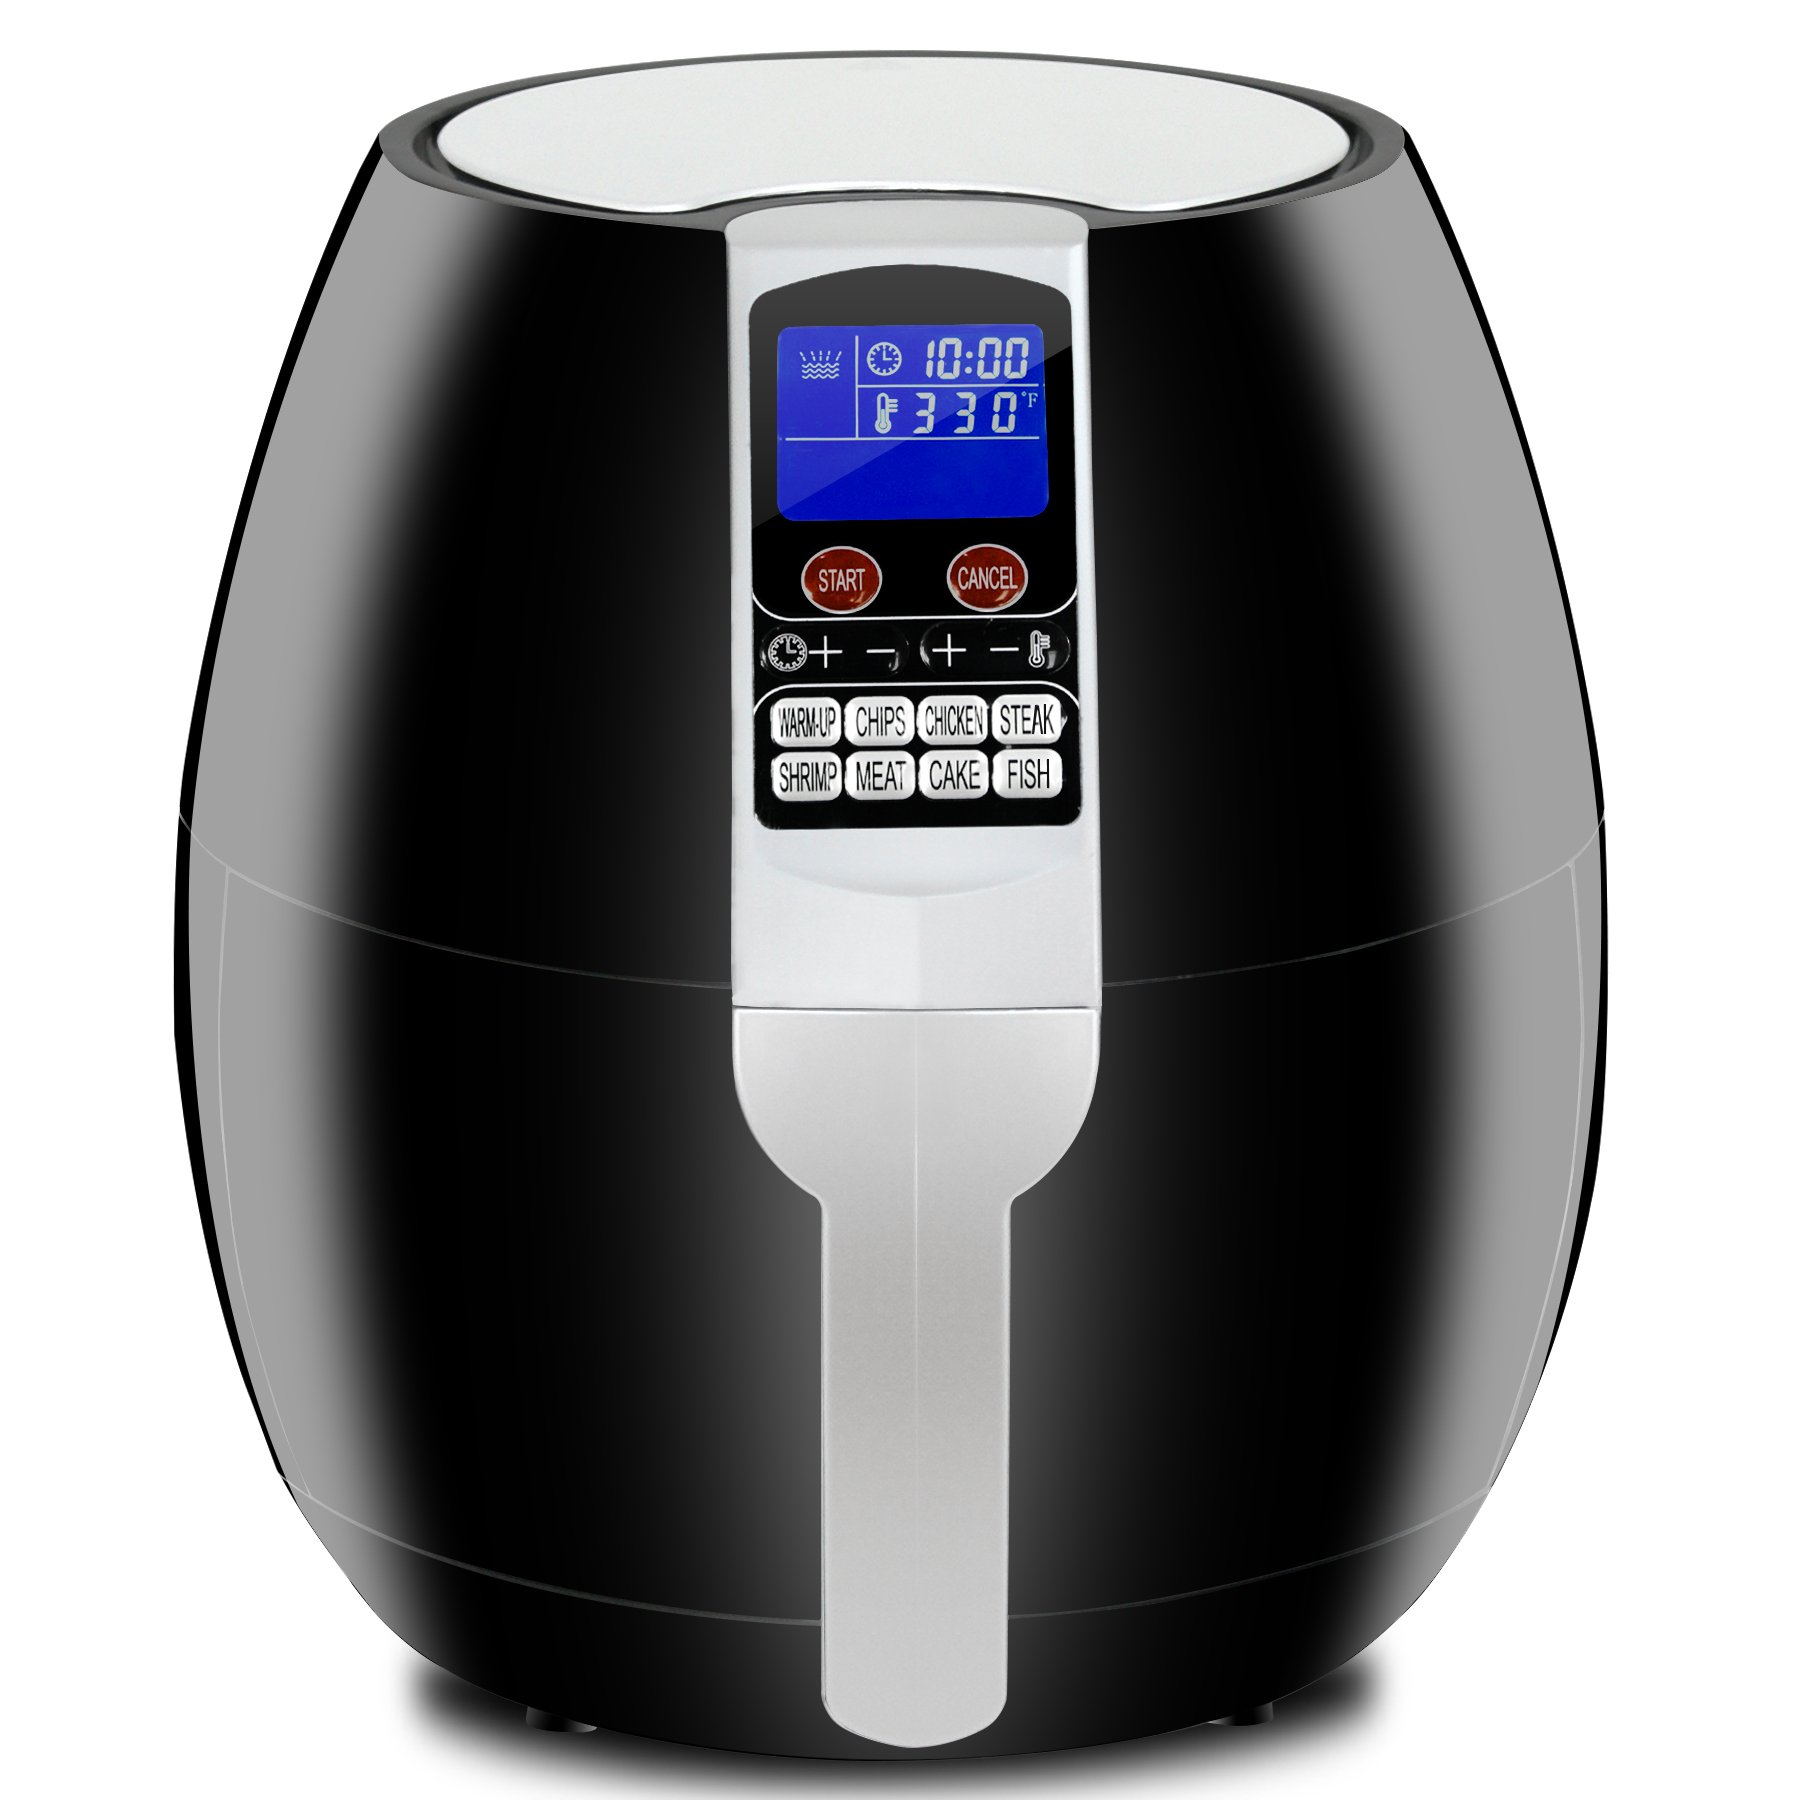 Super Deal 3.7Quart Electric Air Fryer w/ 8 Cooking Presets, Temperature Control, Auto Shut off & Timer, LCD Digital Display Screen